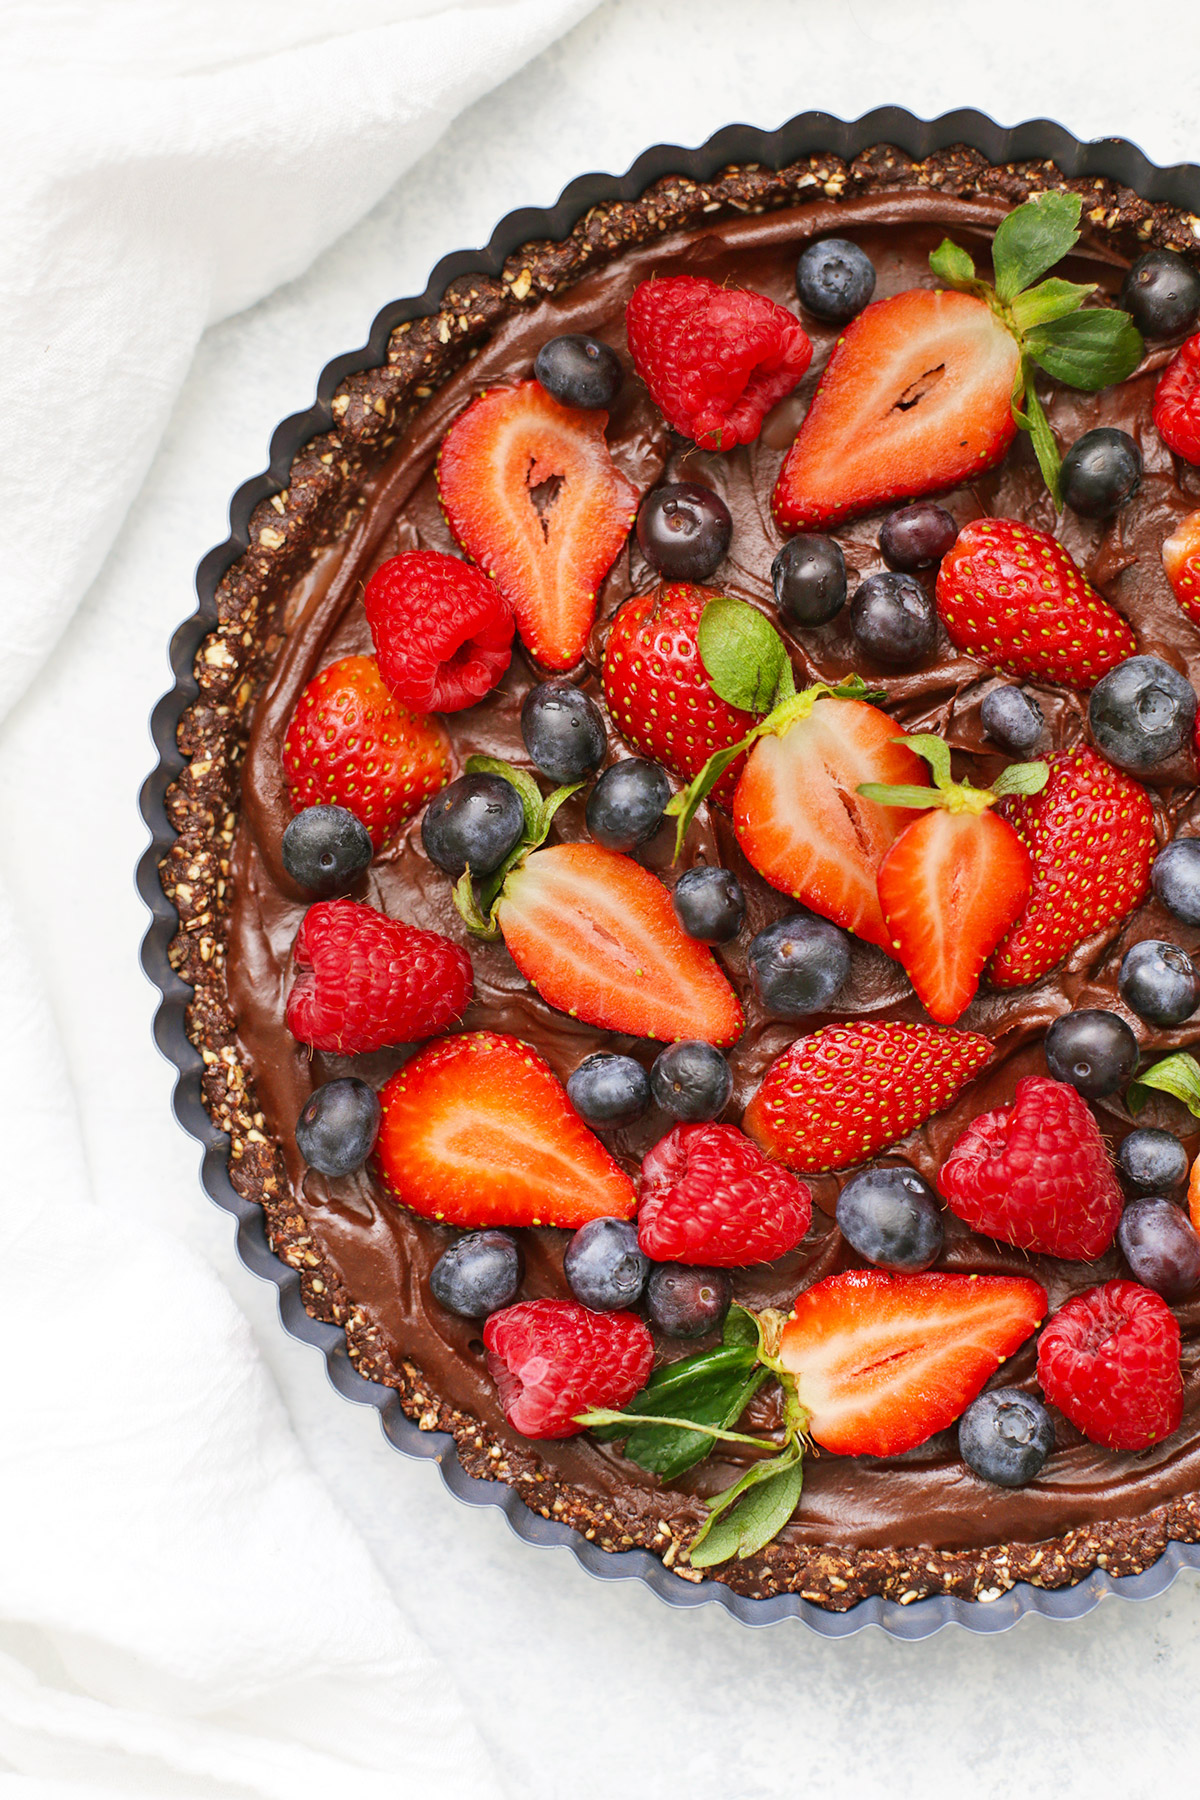 No Bake Chocolate Berry Tart from One Lovely Life